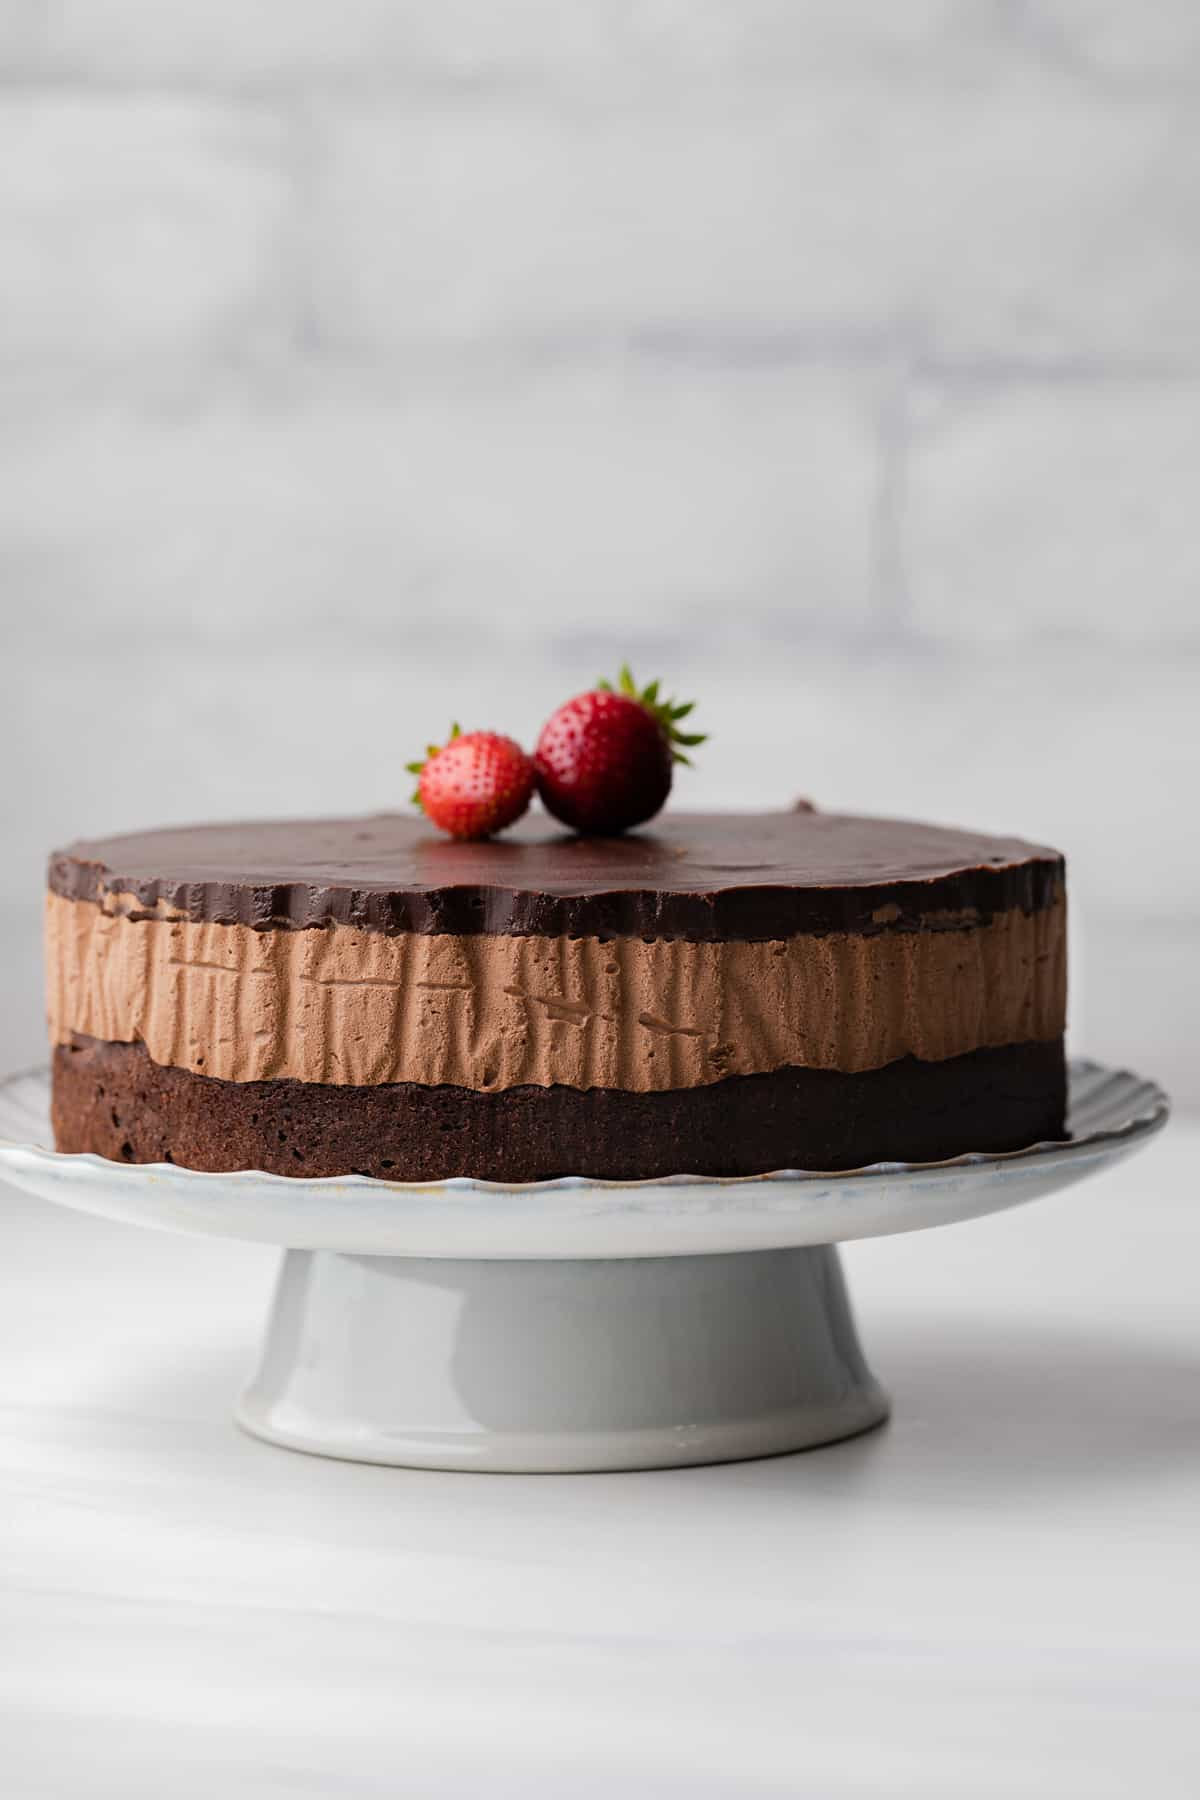 Food Network Chocolate Mousse Cake Recipe